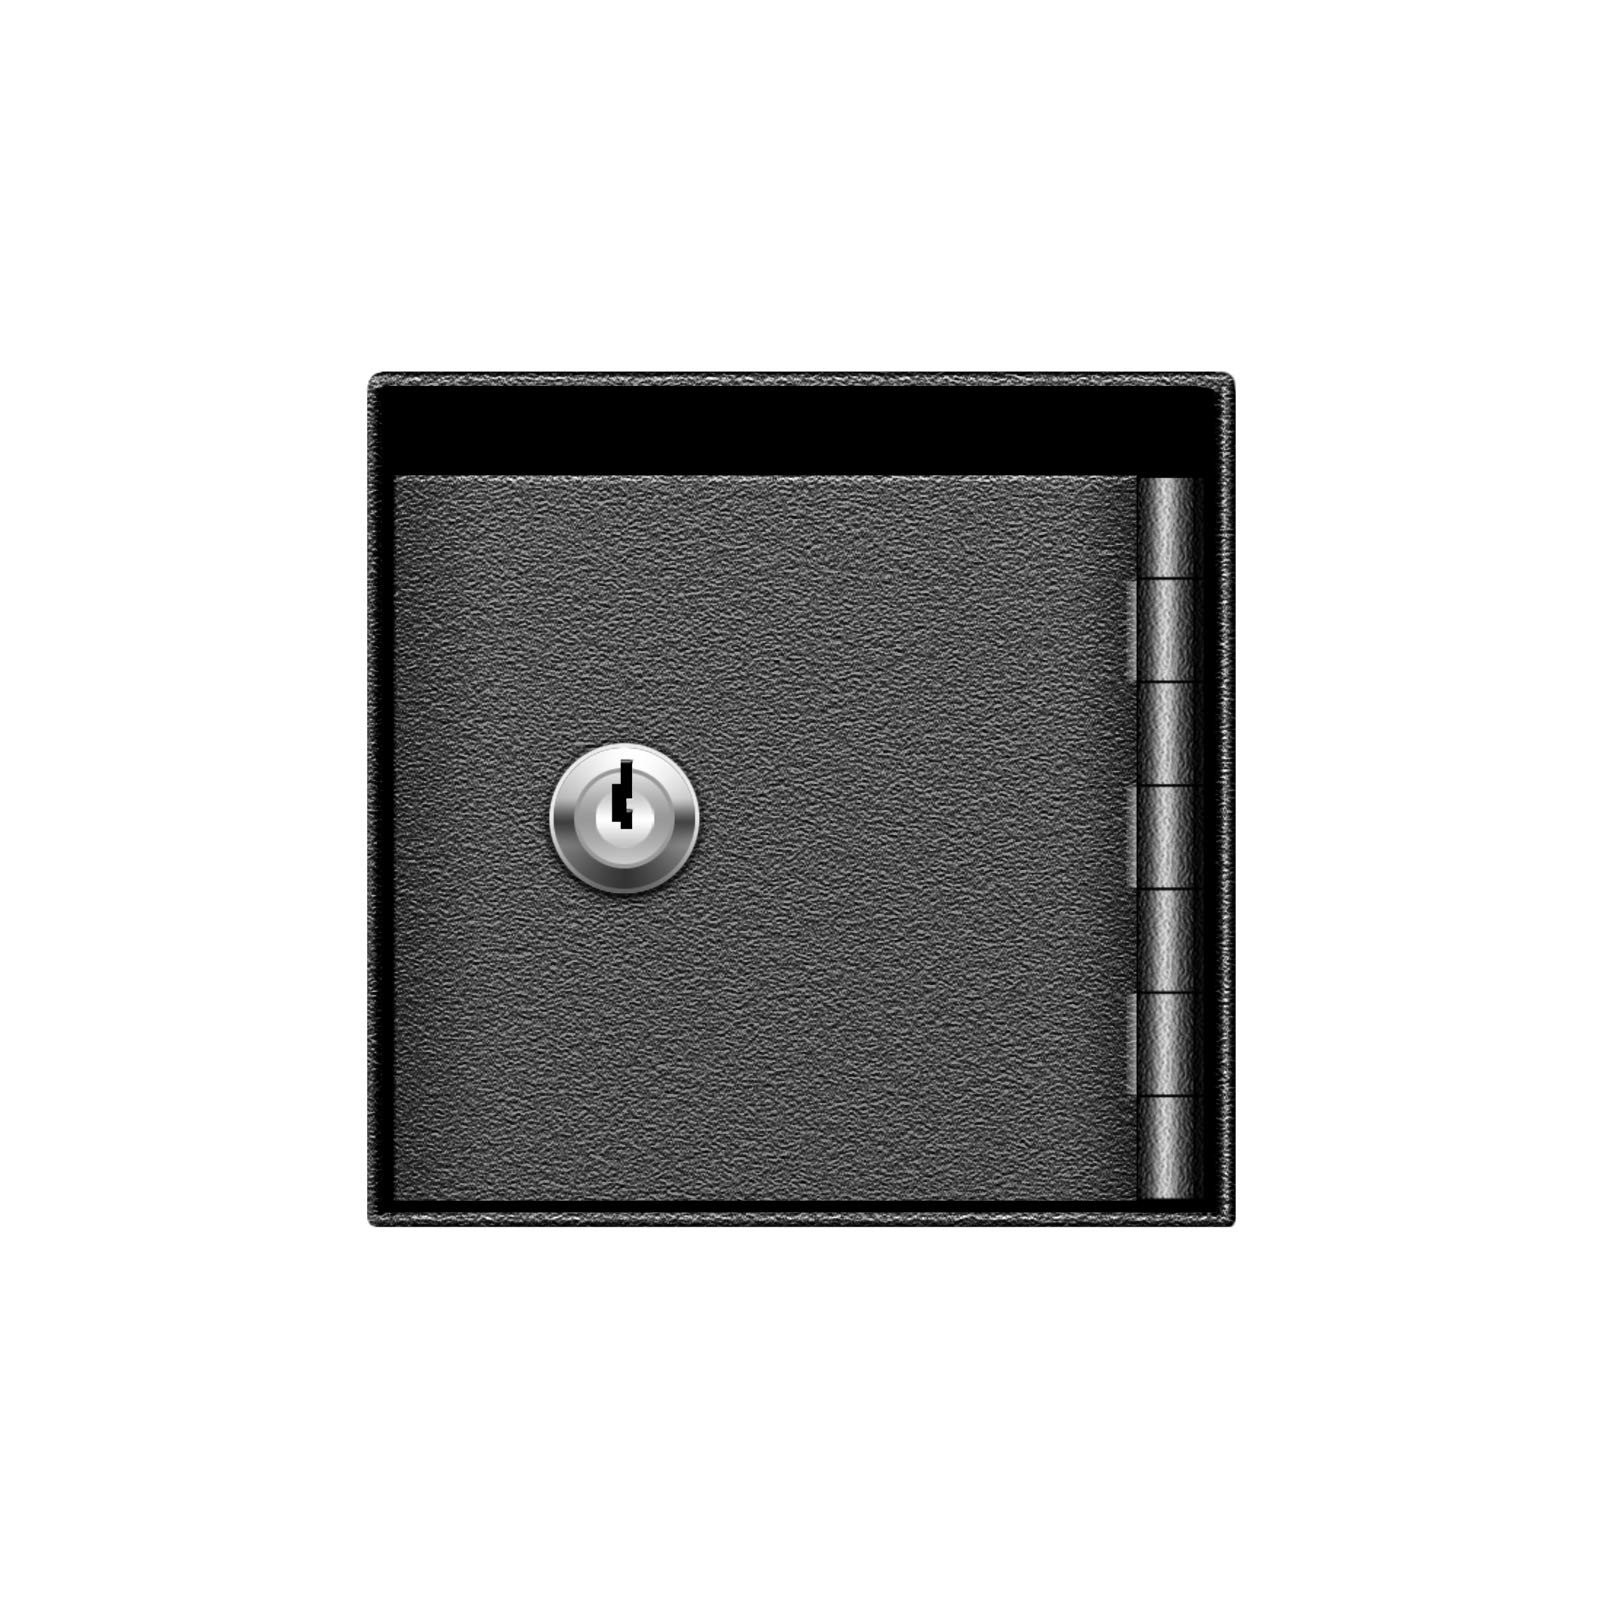 Depository Safe New (Drop Box) Secure Cash Now 6x6x10